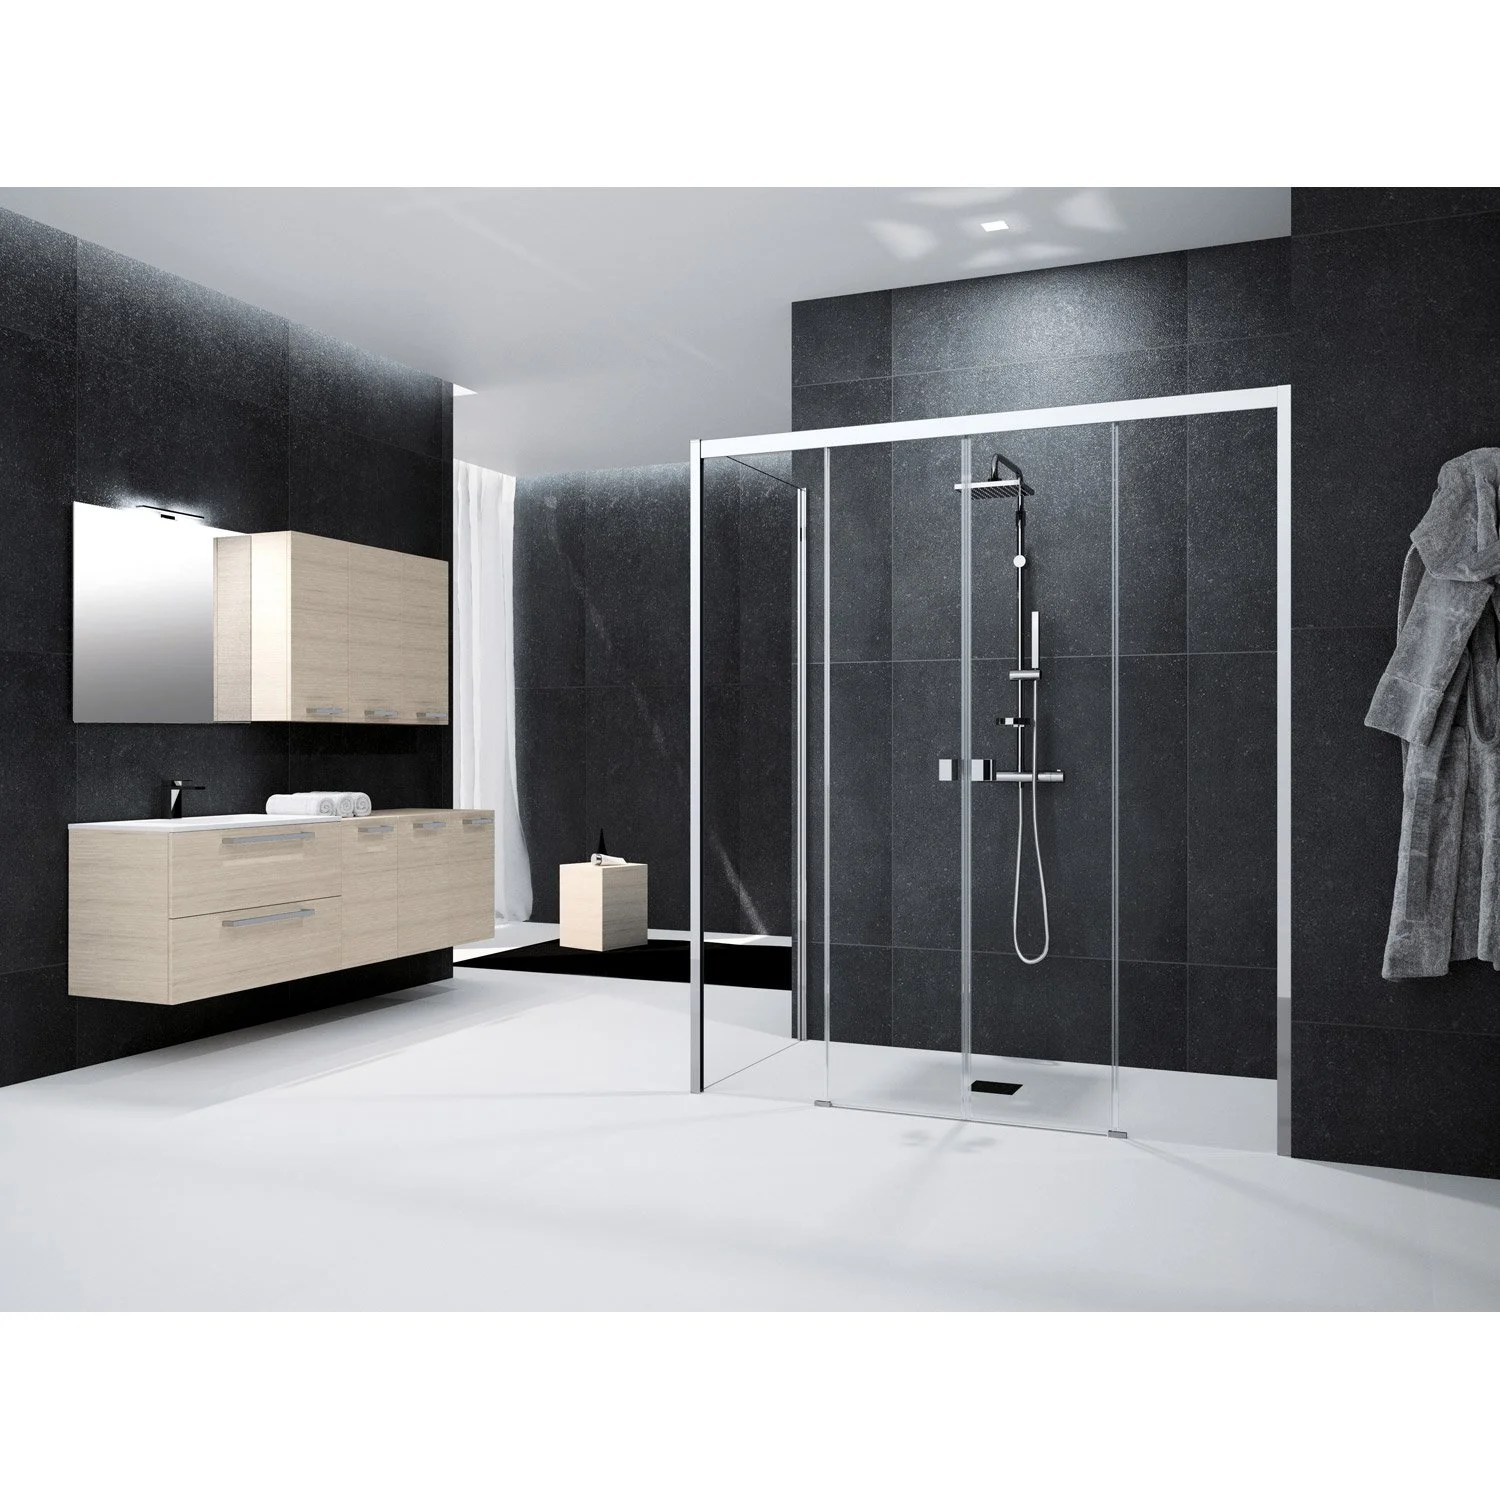 Porte Coulissante Magasin Porte De Douche Coulissante 170 Cm Transparent Neo